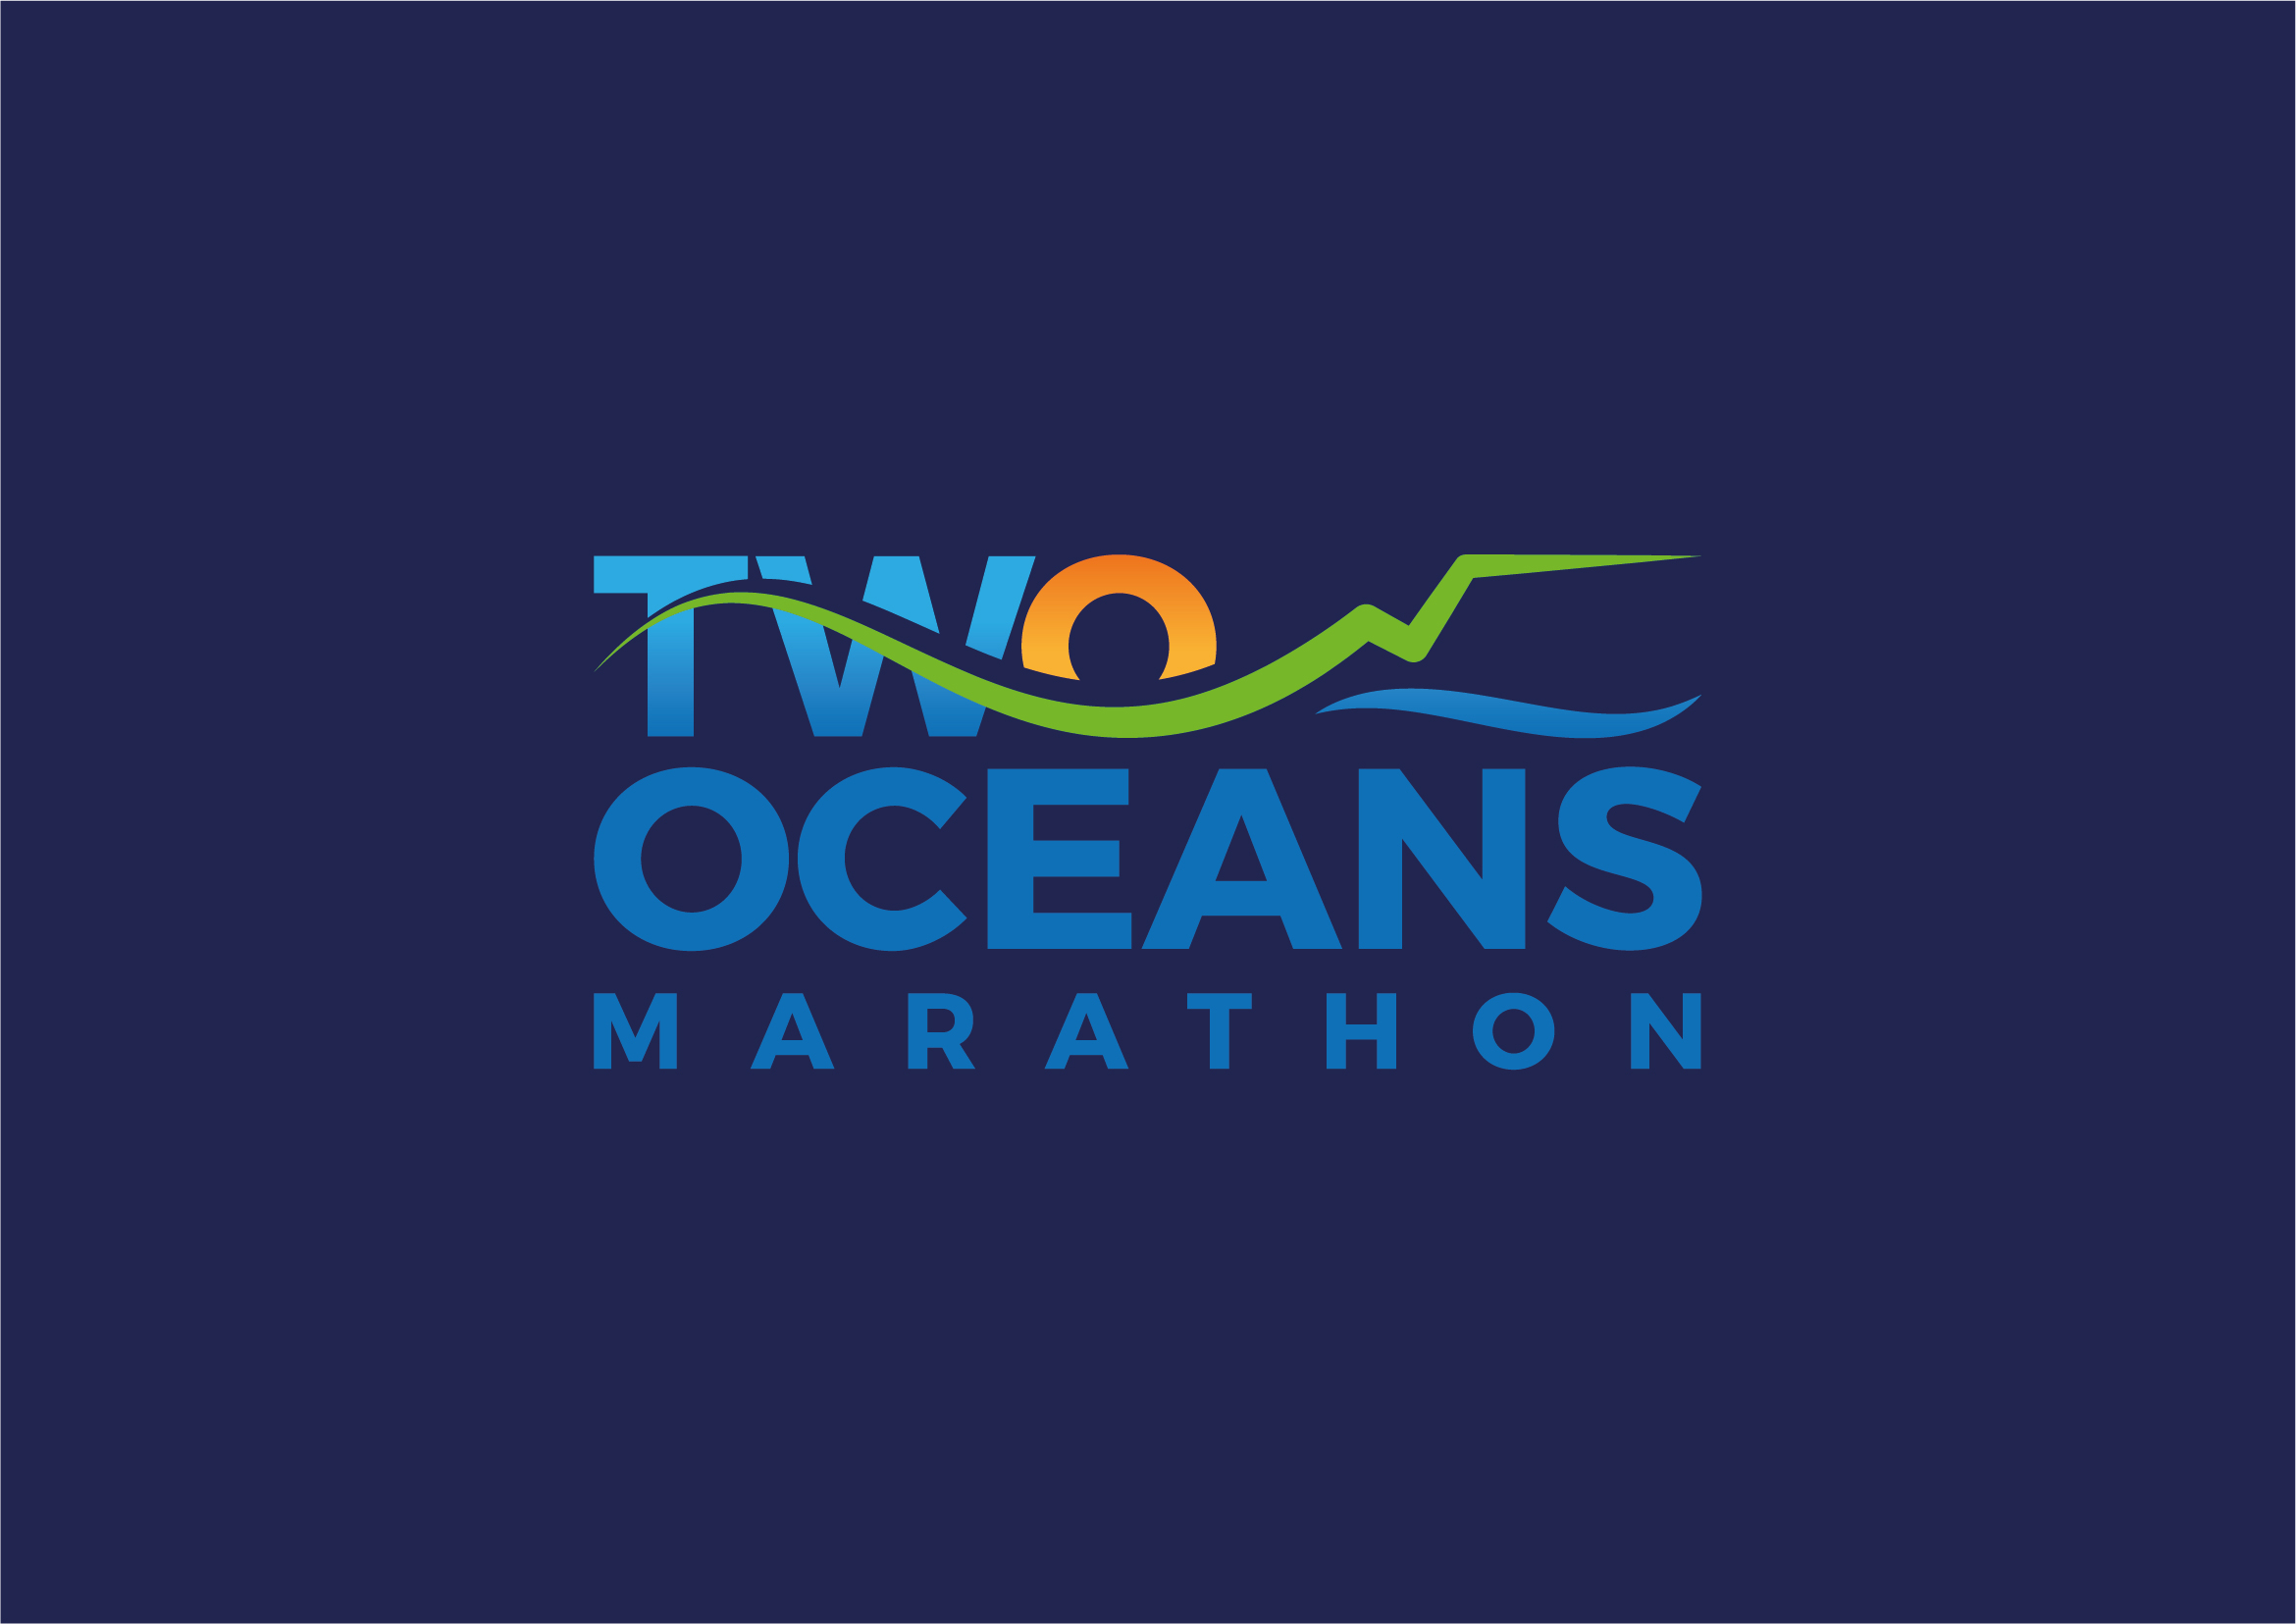 Statement for Two Oceans Marathon 2020 Stakeholders, Runners and Media